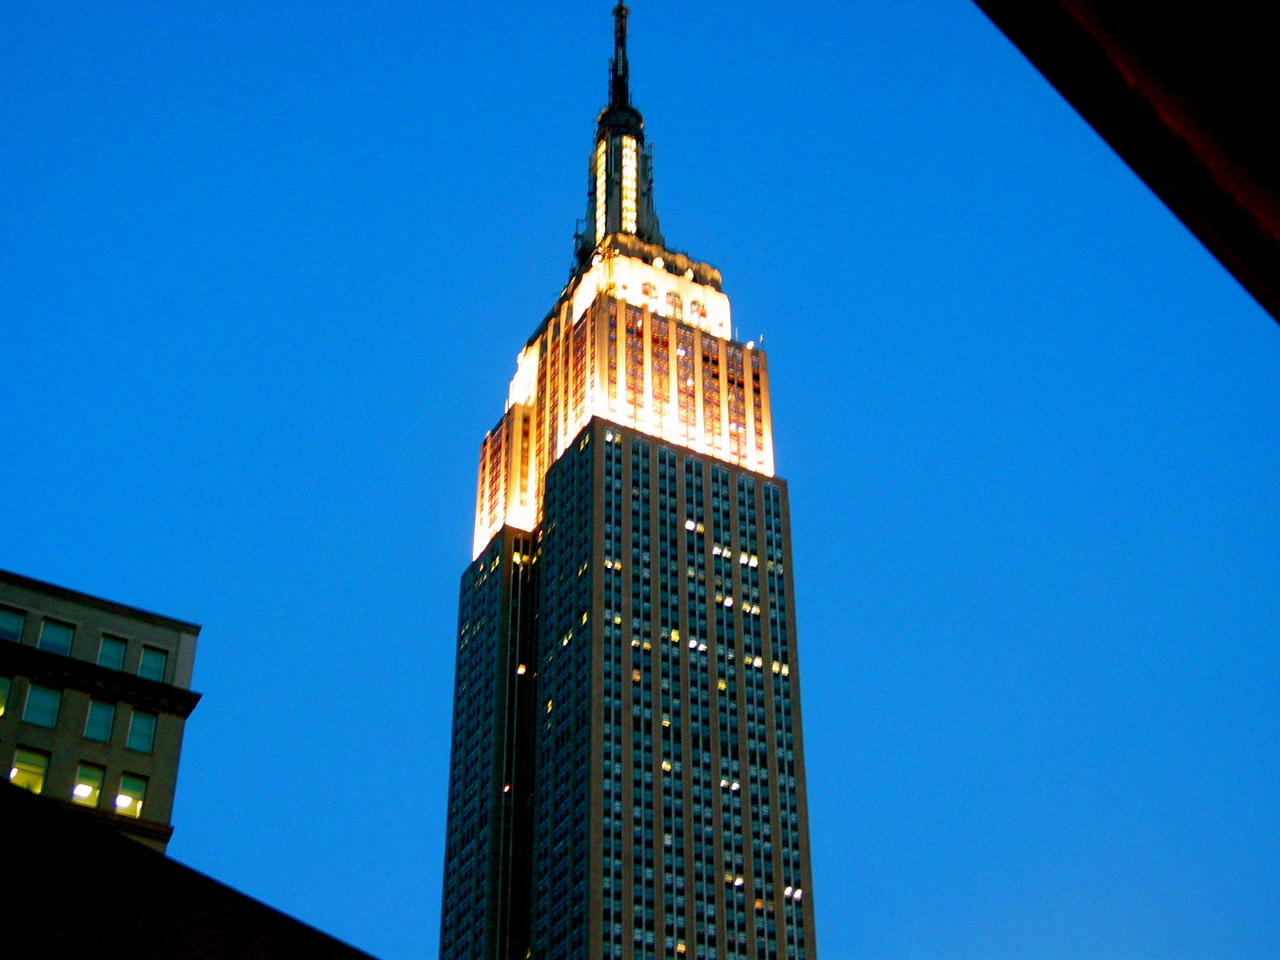 Empire State Building at dusk, New York